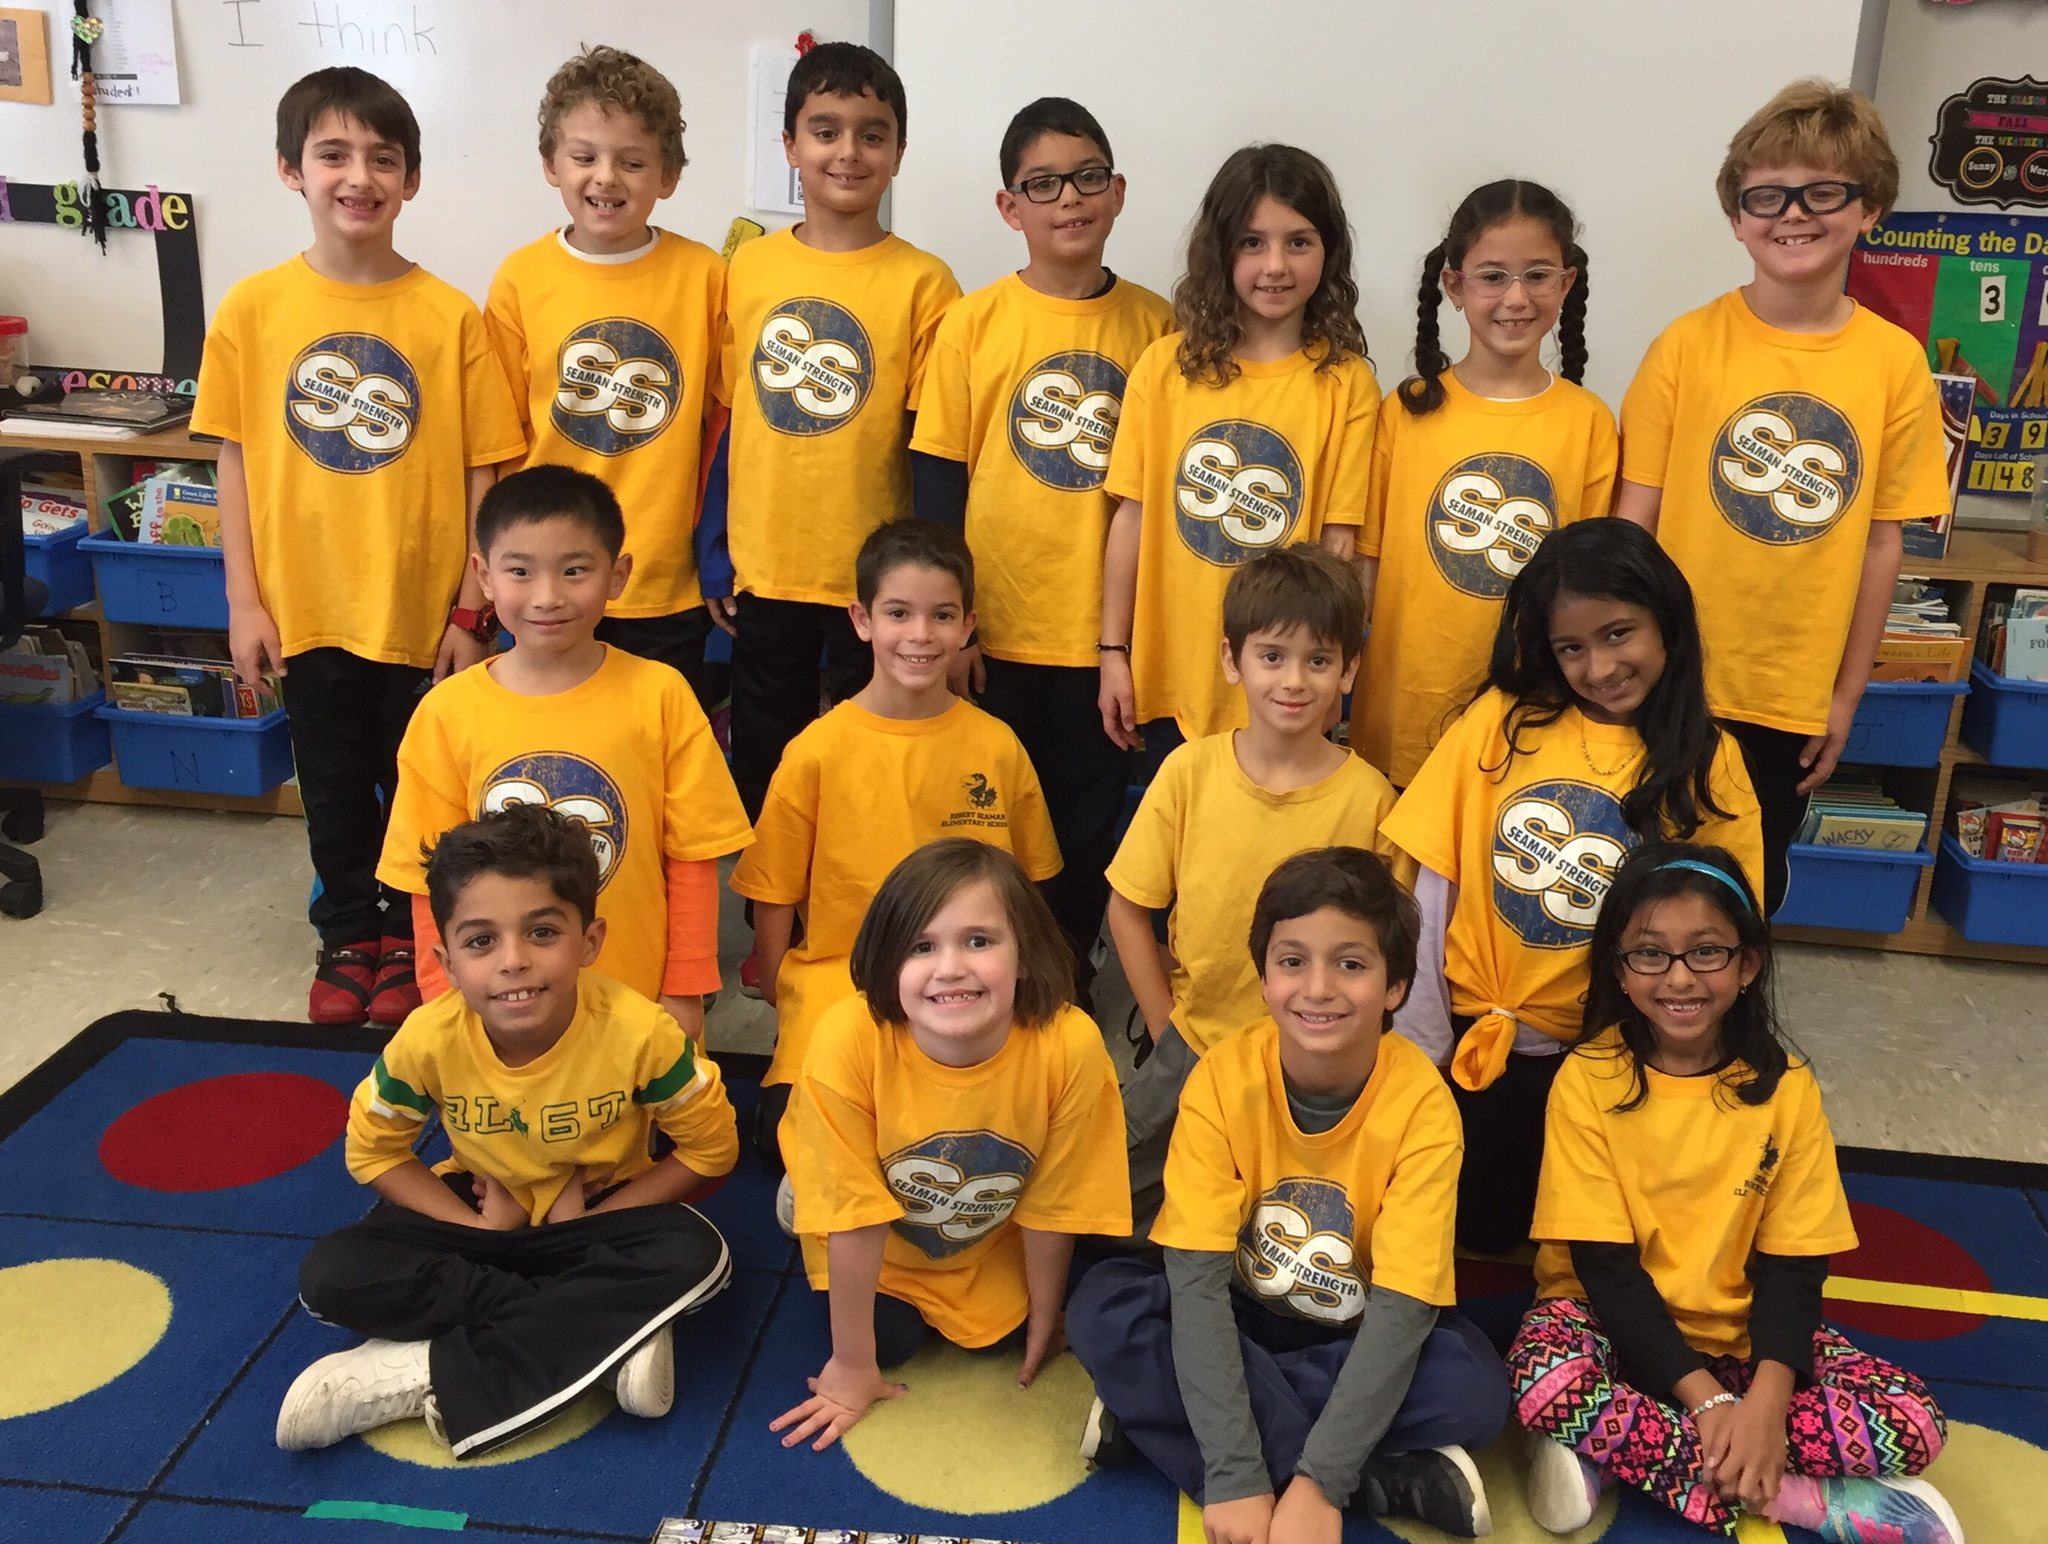 Class #2ZC is showing their #seamanstrength school spirit today all dressed proudly in yellow👍💛 @Ivysherman @AcohenAllie https://t.co/yYre3pu4ra